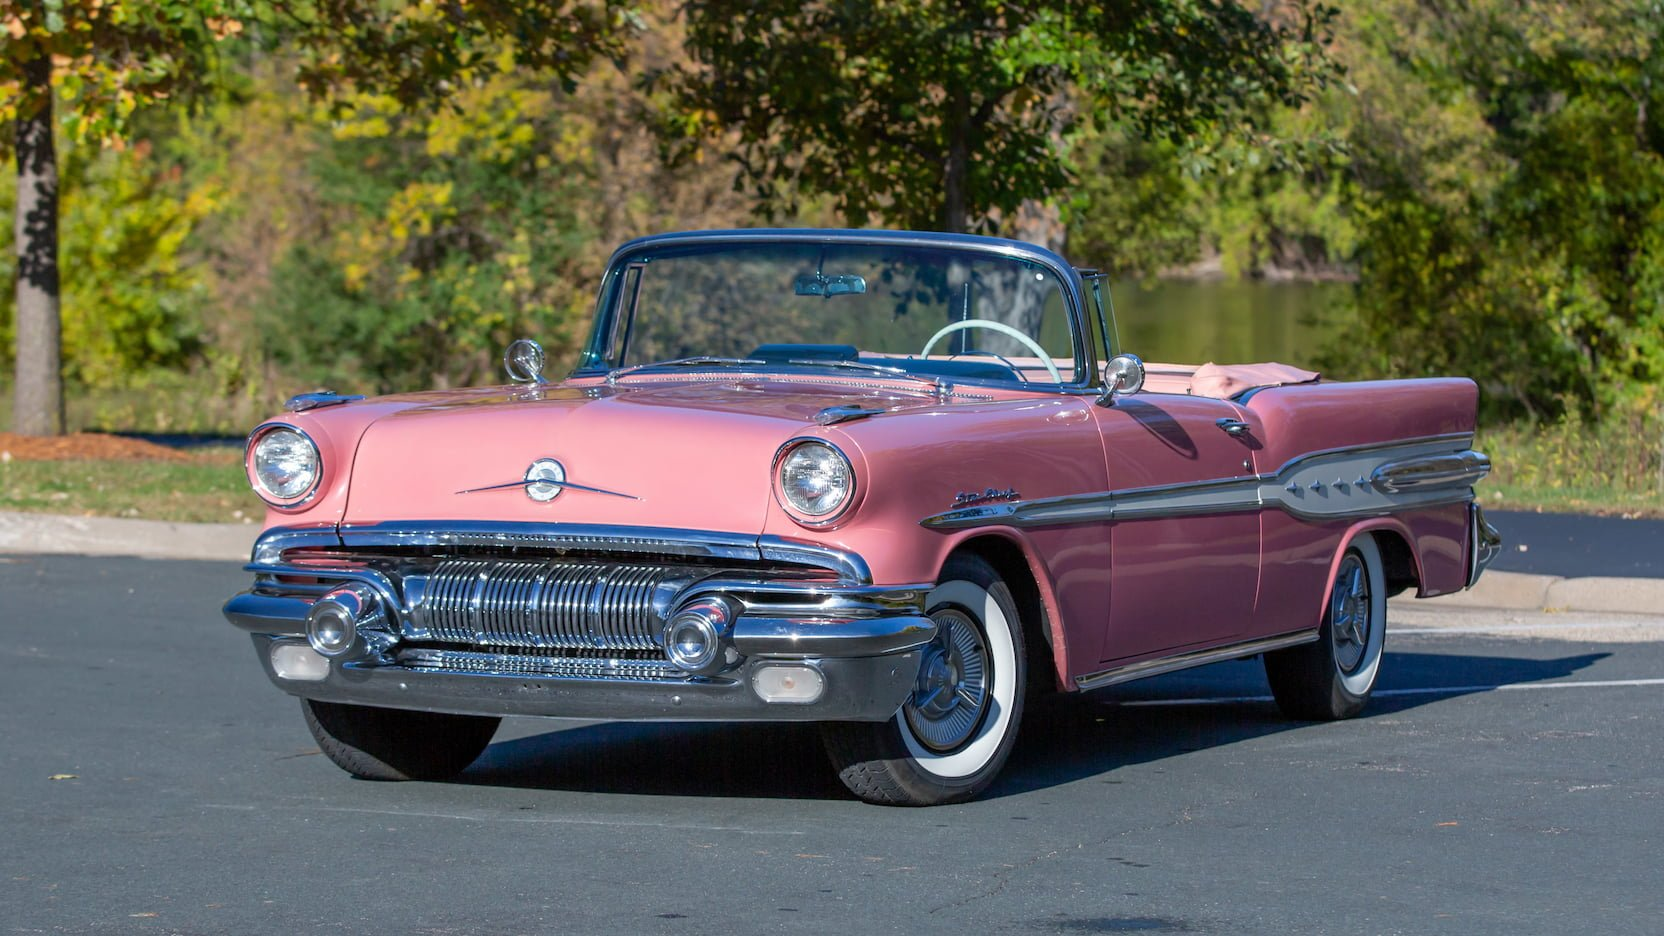 1957 #Pontiac Star Chief Convertible in Carrib Coral https://t.co/z2tZB0aYoX